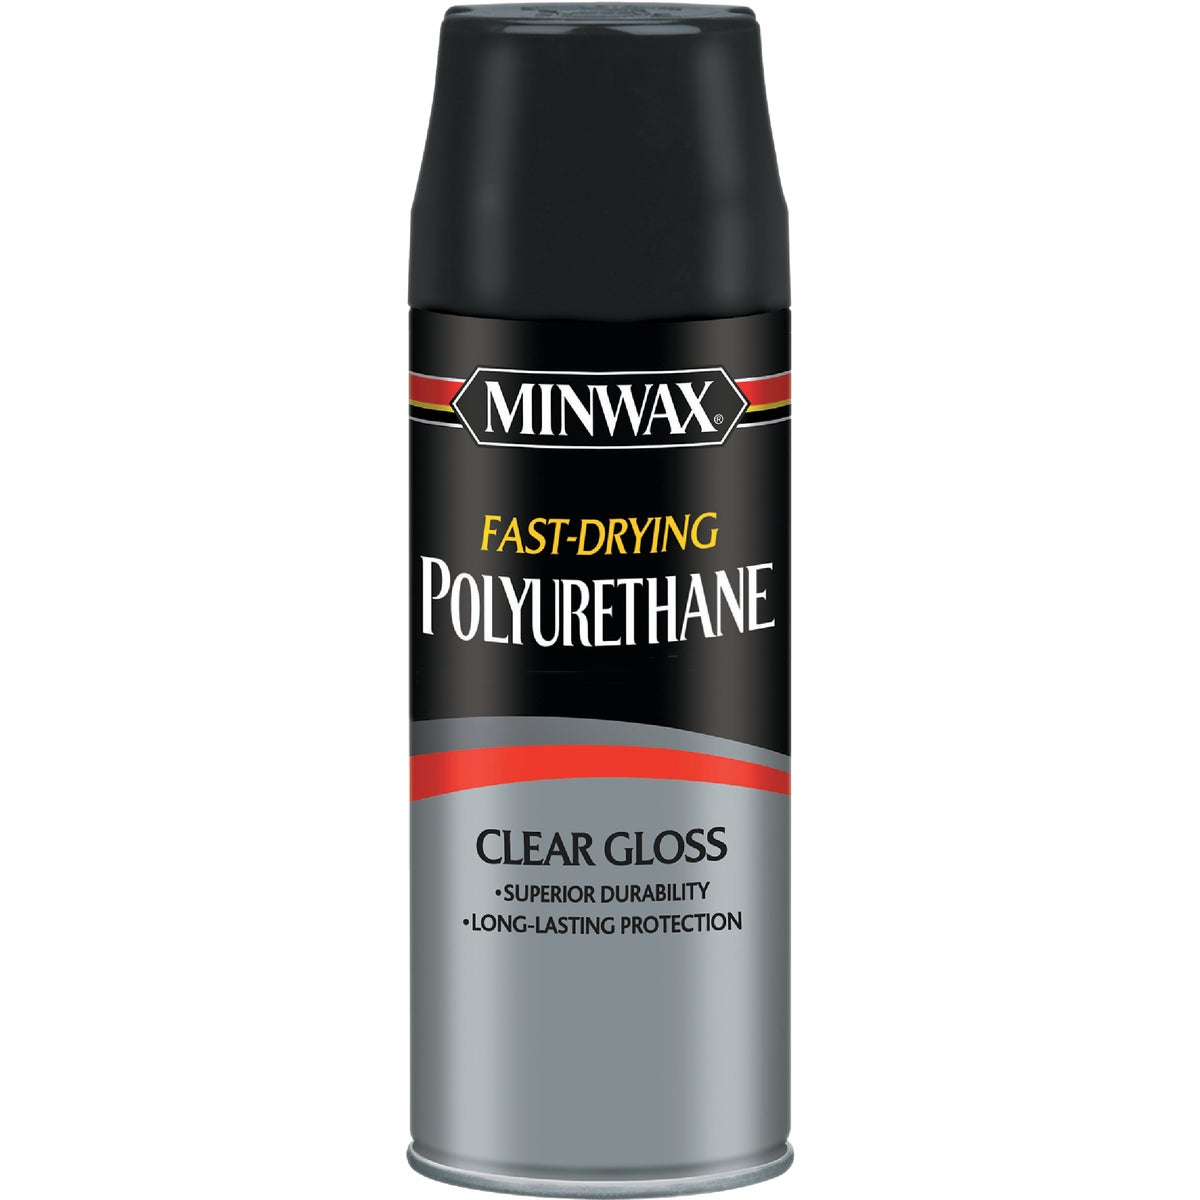 GLOSS SPRAY POLYURETHANE - 33050 by Minwax Company